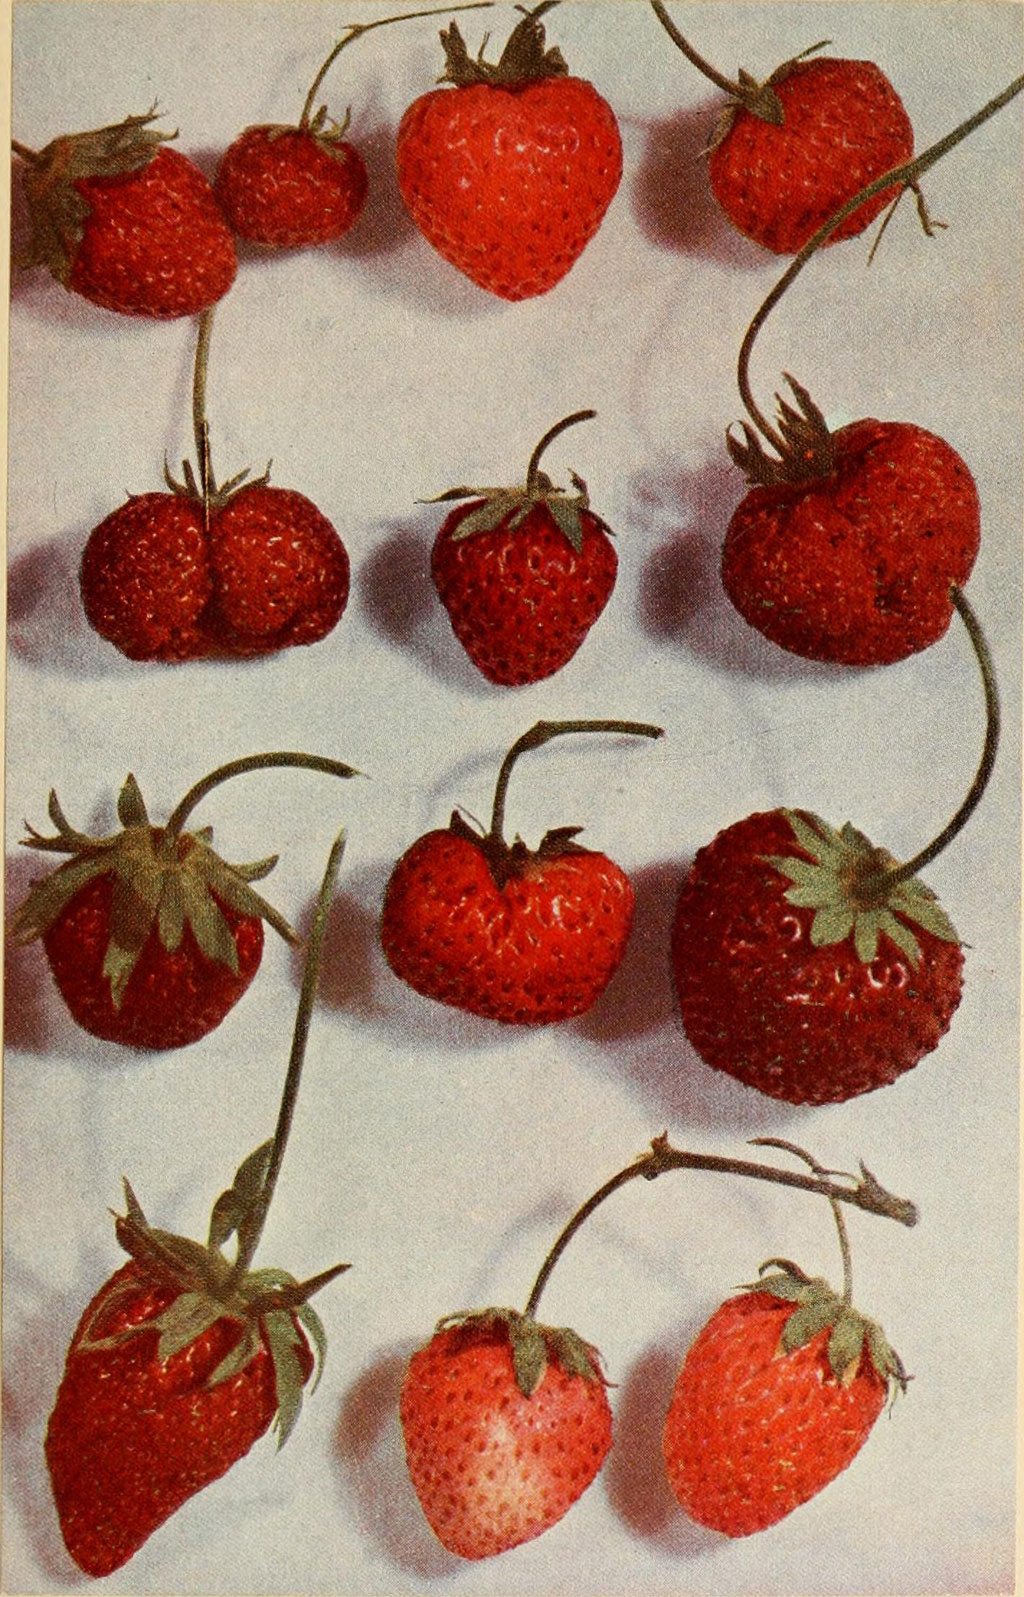 Image of strawberries from Luther Burbank